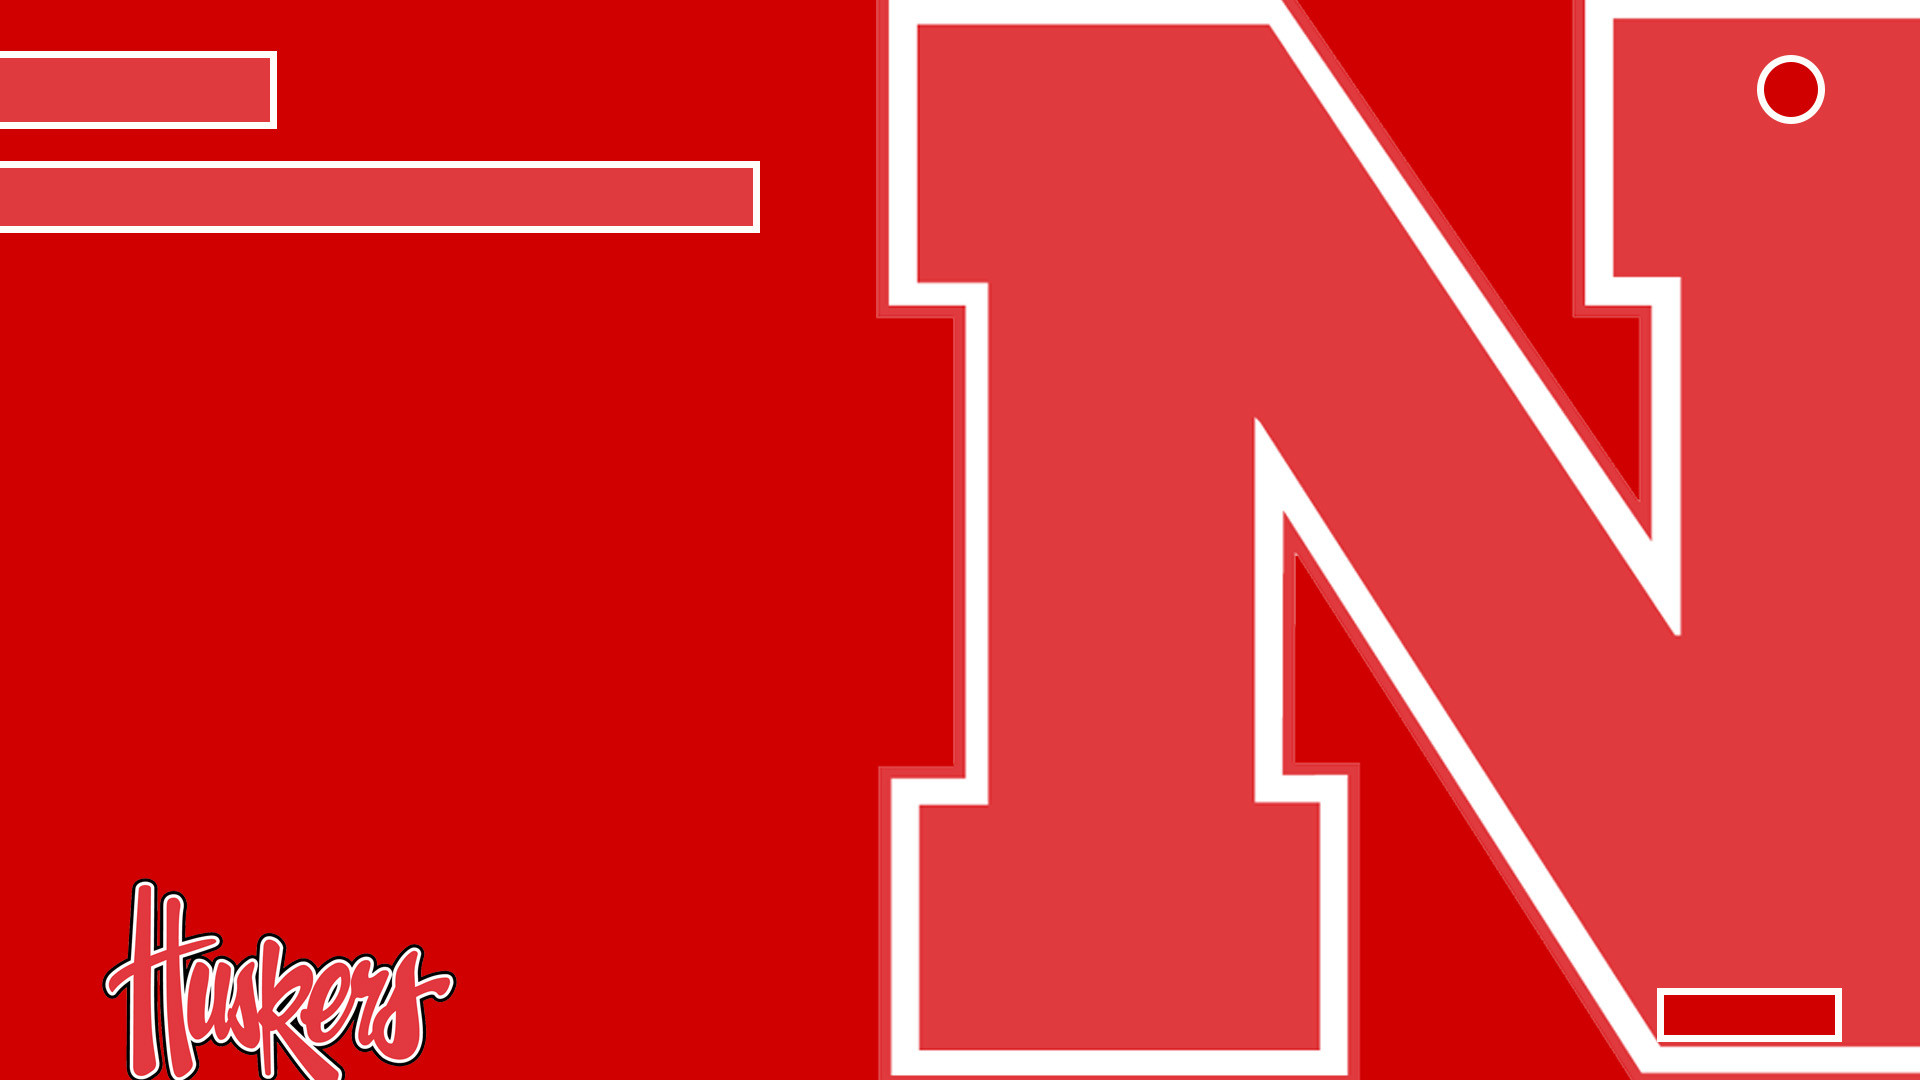 Huskers background for the Xbox One.